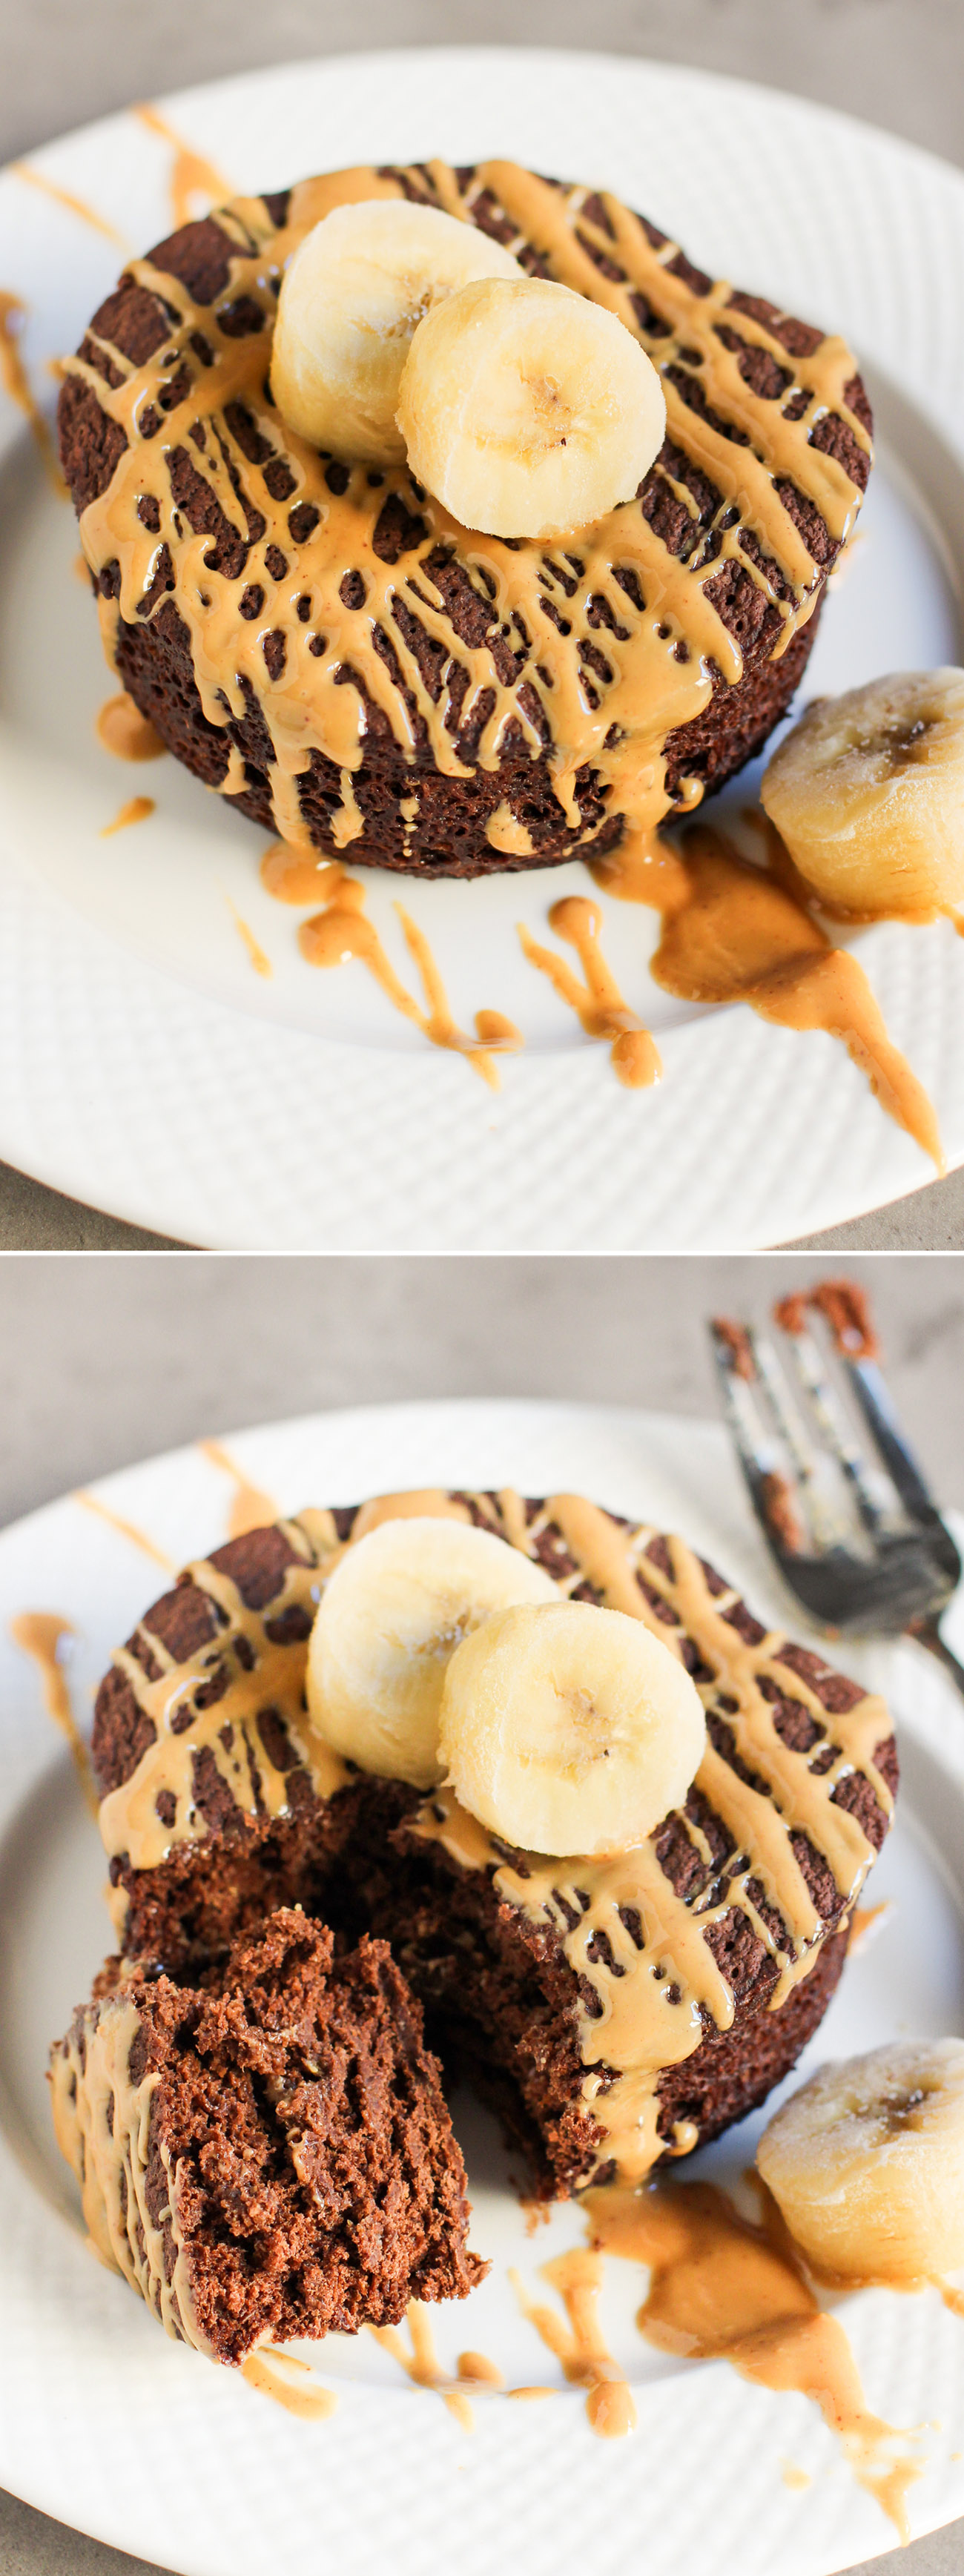 5-Minute Healthy Single-Serving Chocolate Peanut Butter Banana Microwave Cake (refined sugar free, high protein, high fiber, gluten free, vegan) -- Healthy Dessert Recipes at the Desserts With Benefits Blog